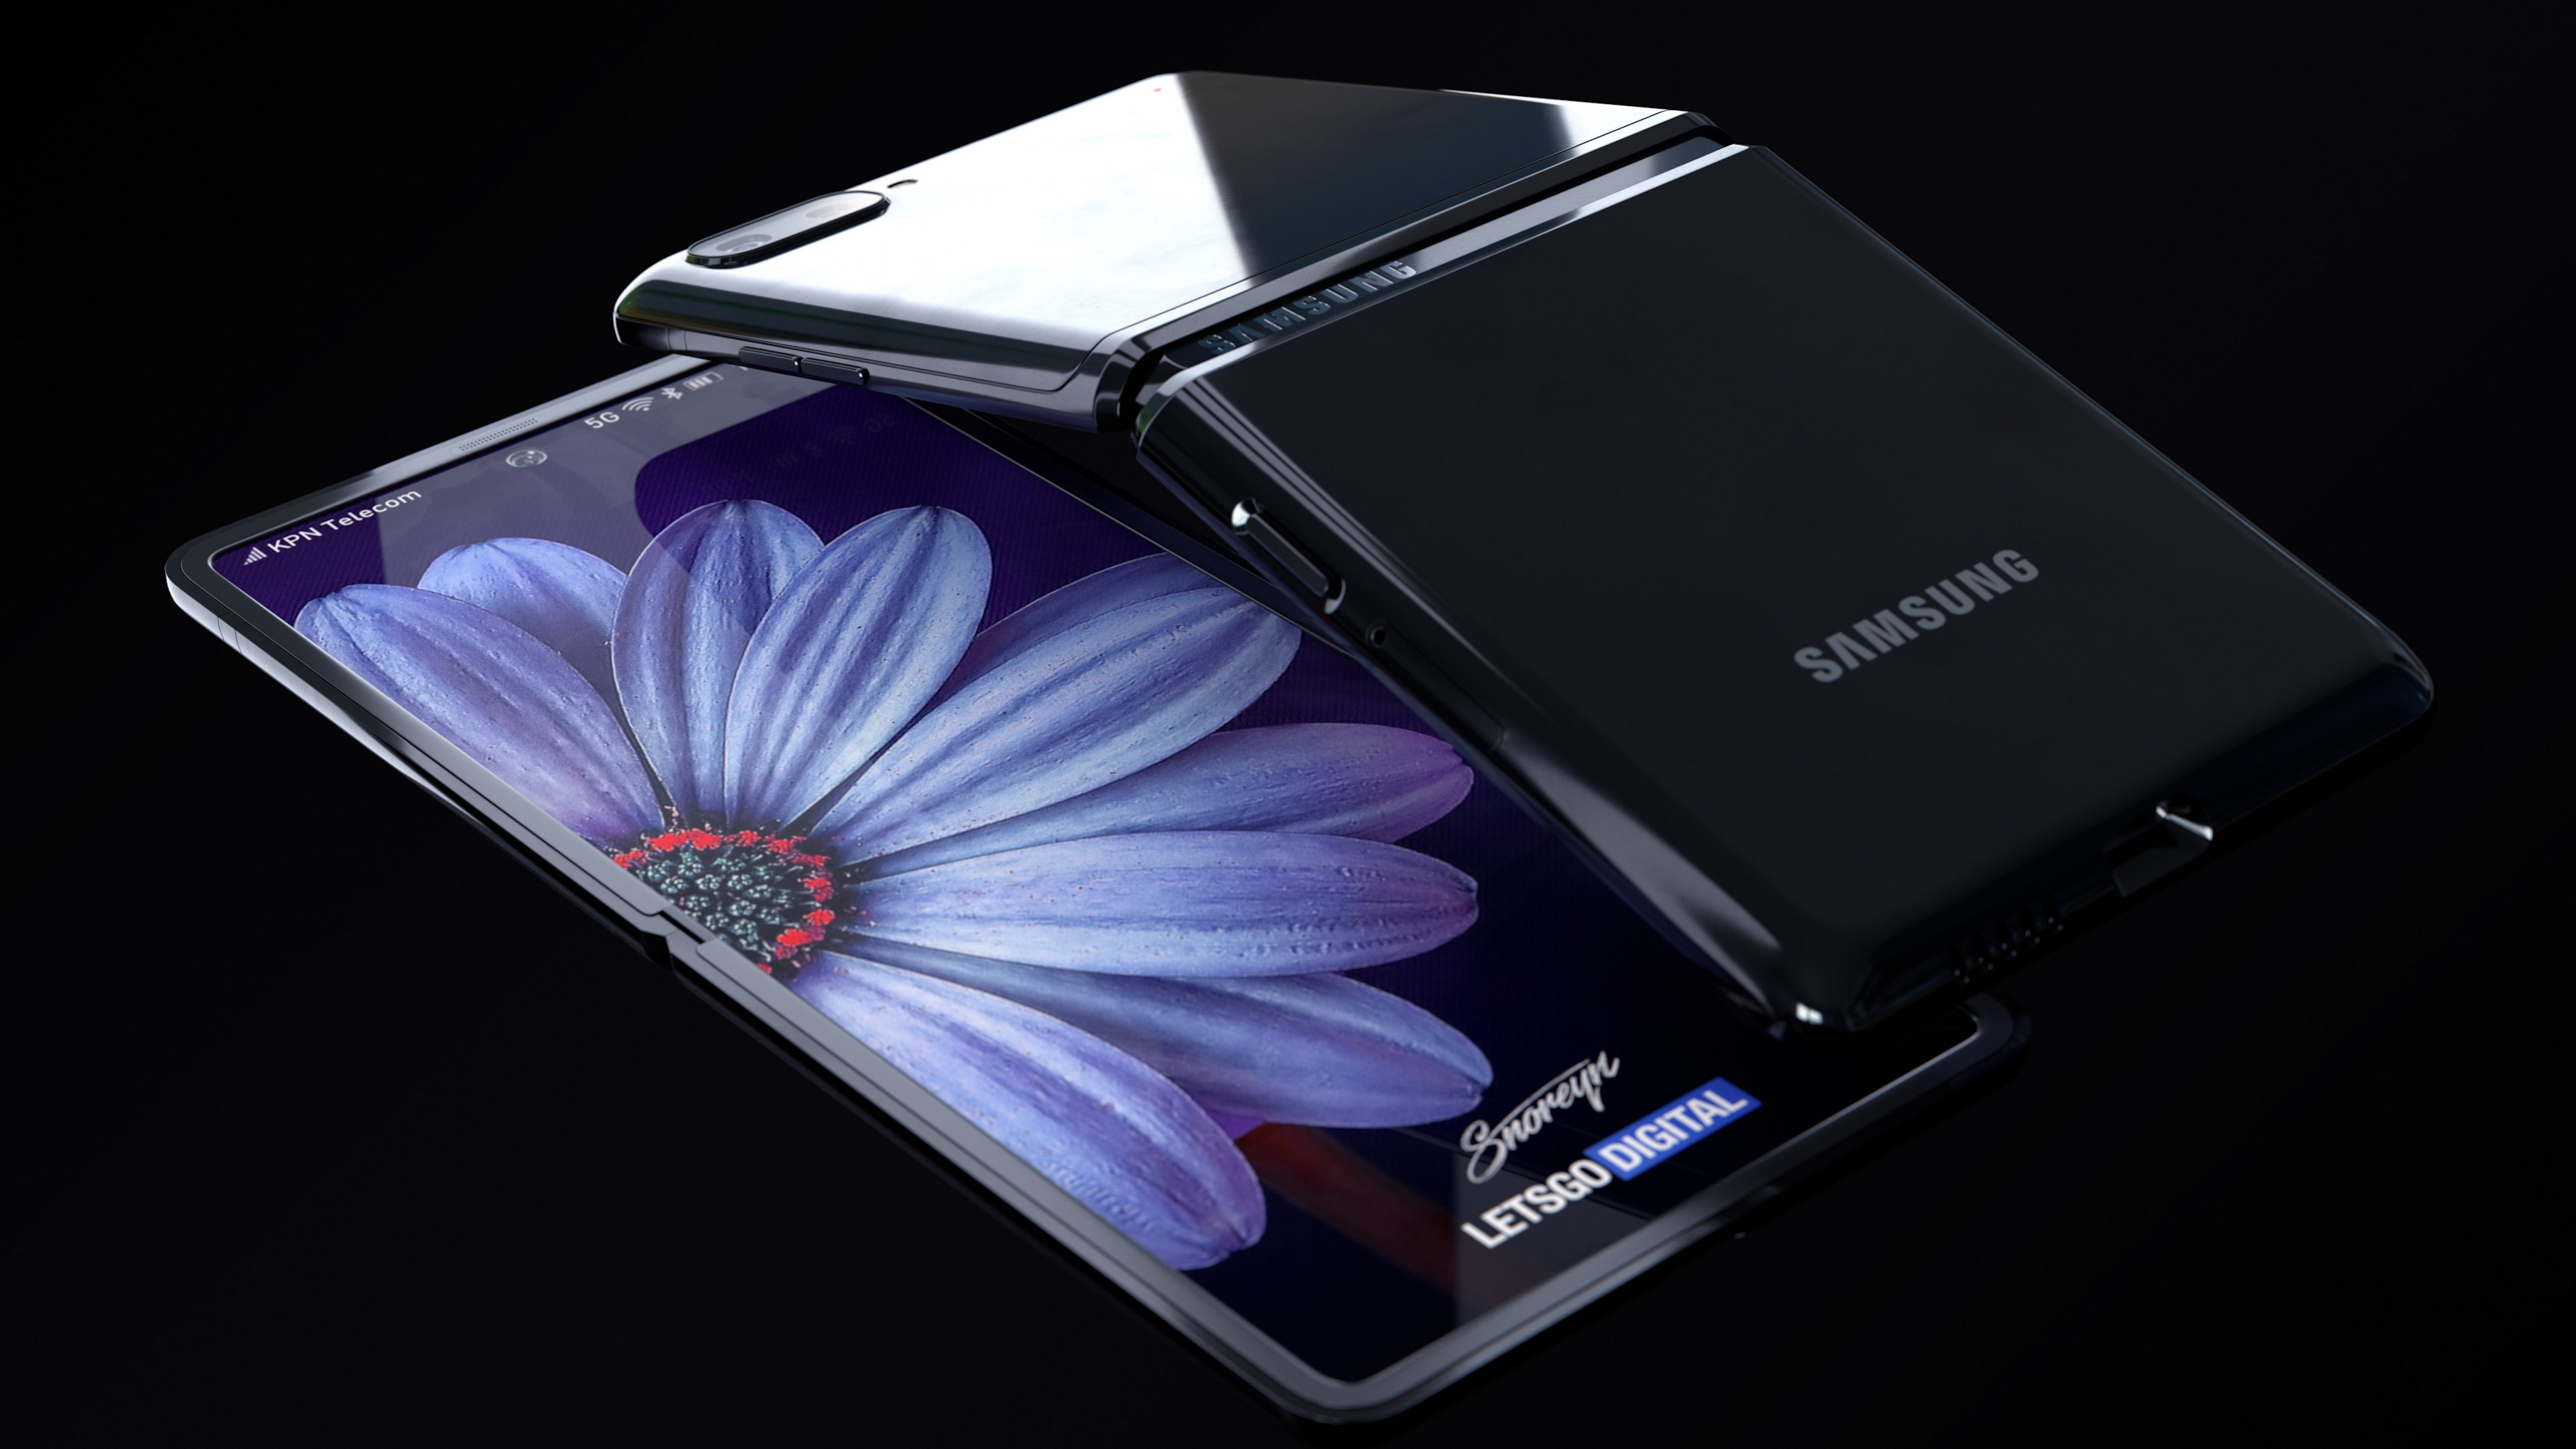 Wallpaper Samsung Galaxy Z Flip Foldable Smartphone 4k Hi Tech 22499 Page 2